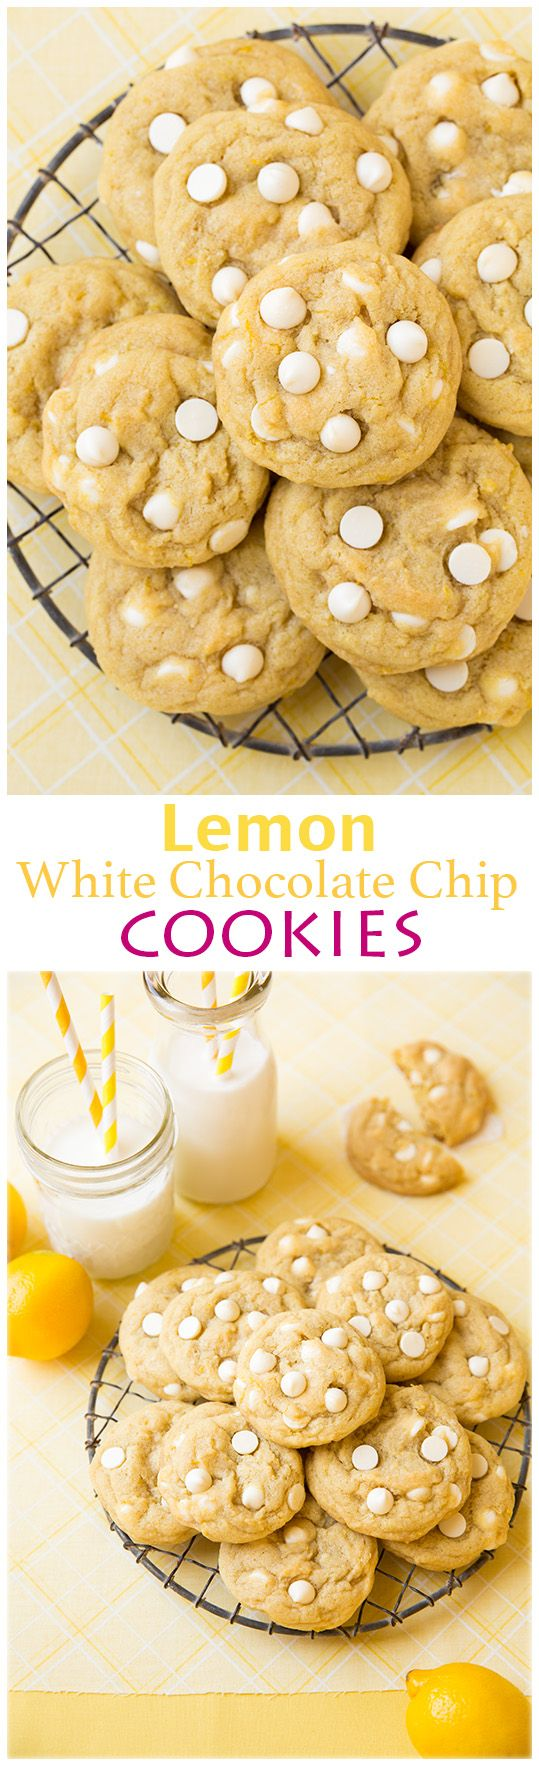 Lemon White Chocolate Chip Cookies - these cookies are INCREDIBLE! So lemony, so soft and perfectly chewy.